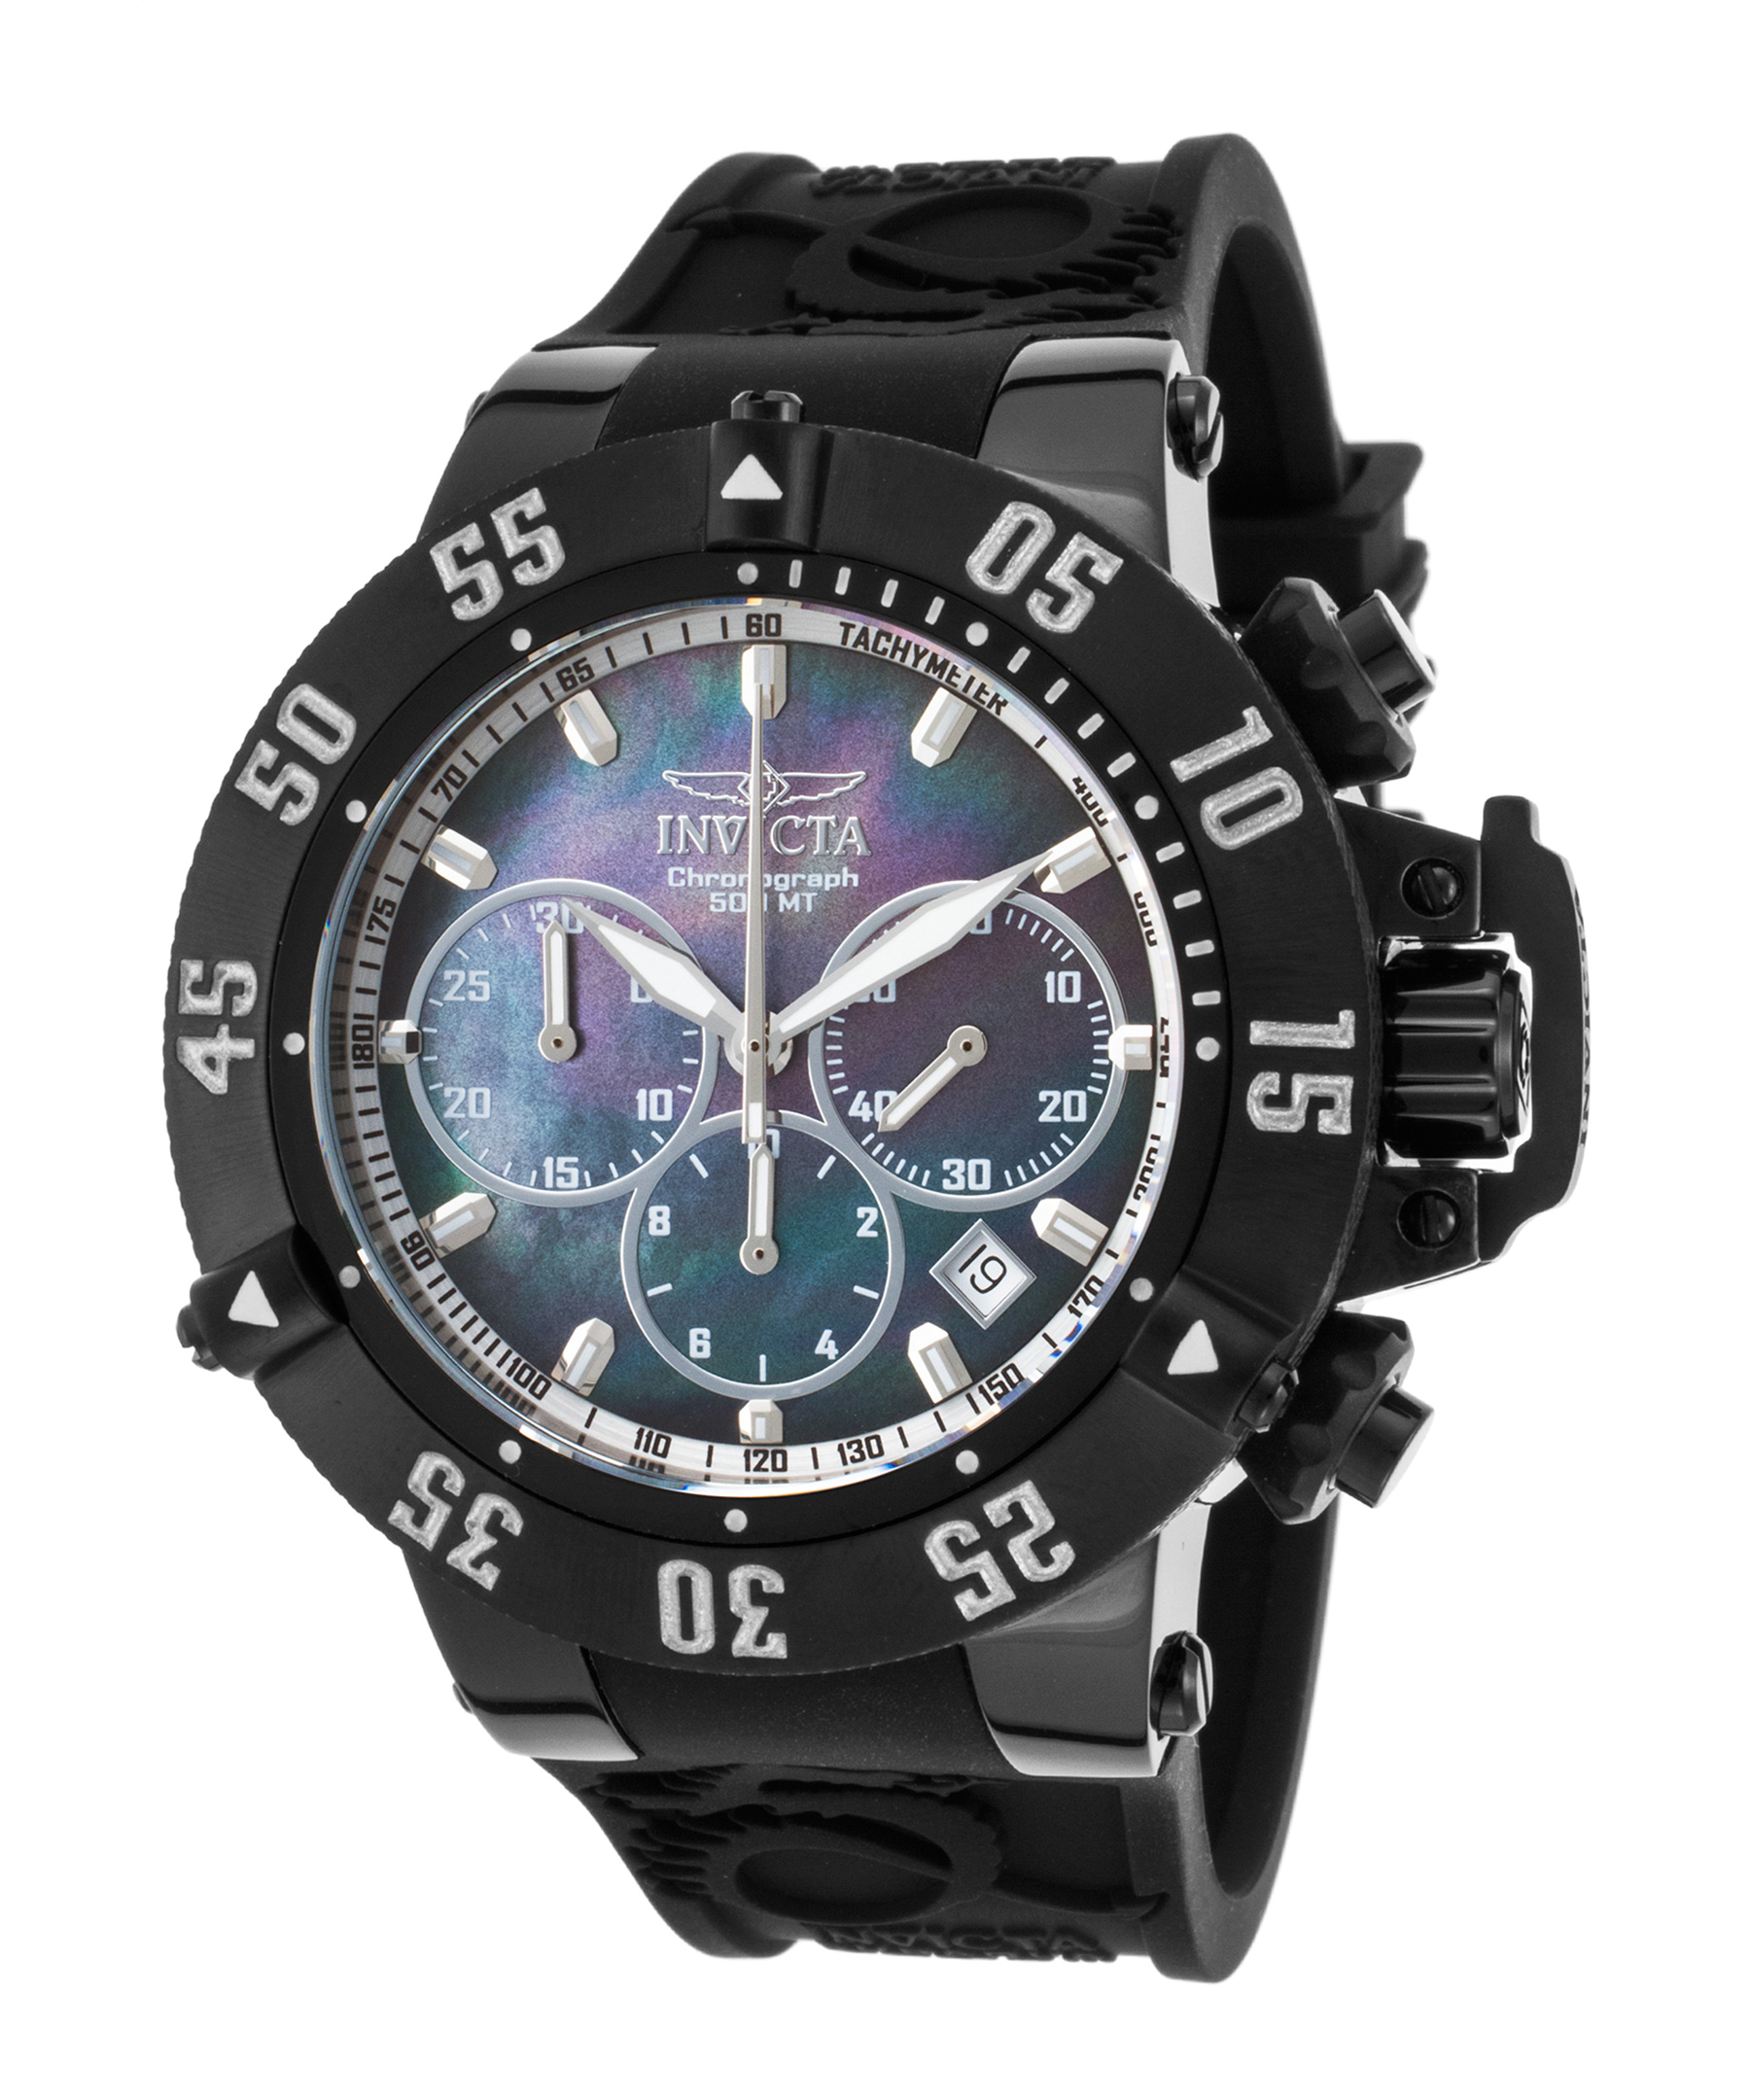 herculodge manly pi watches page img